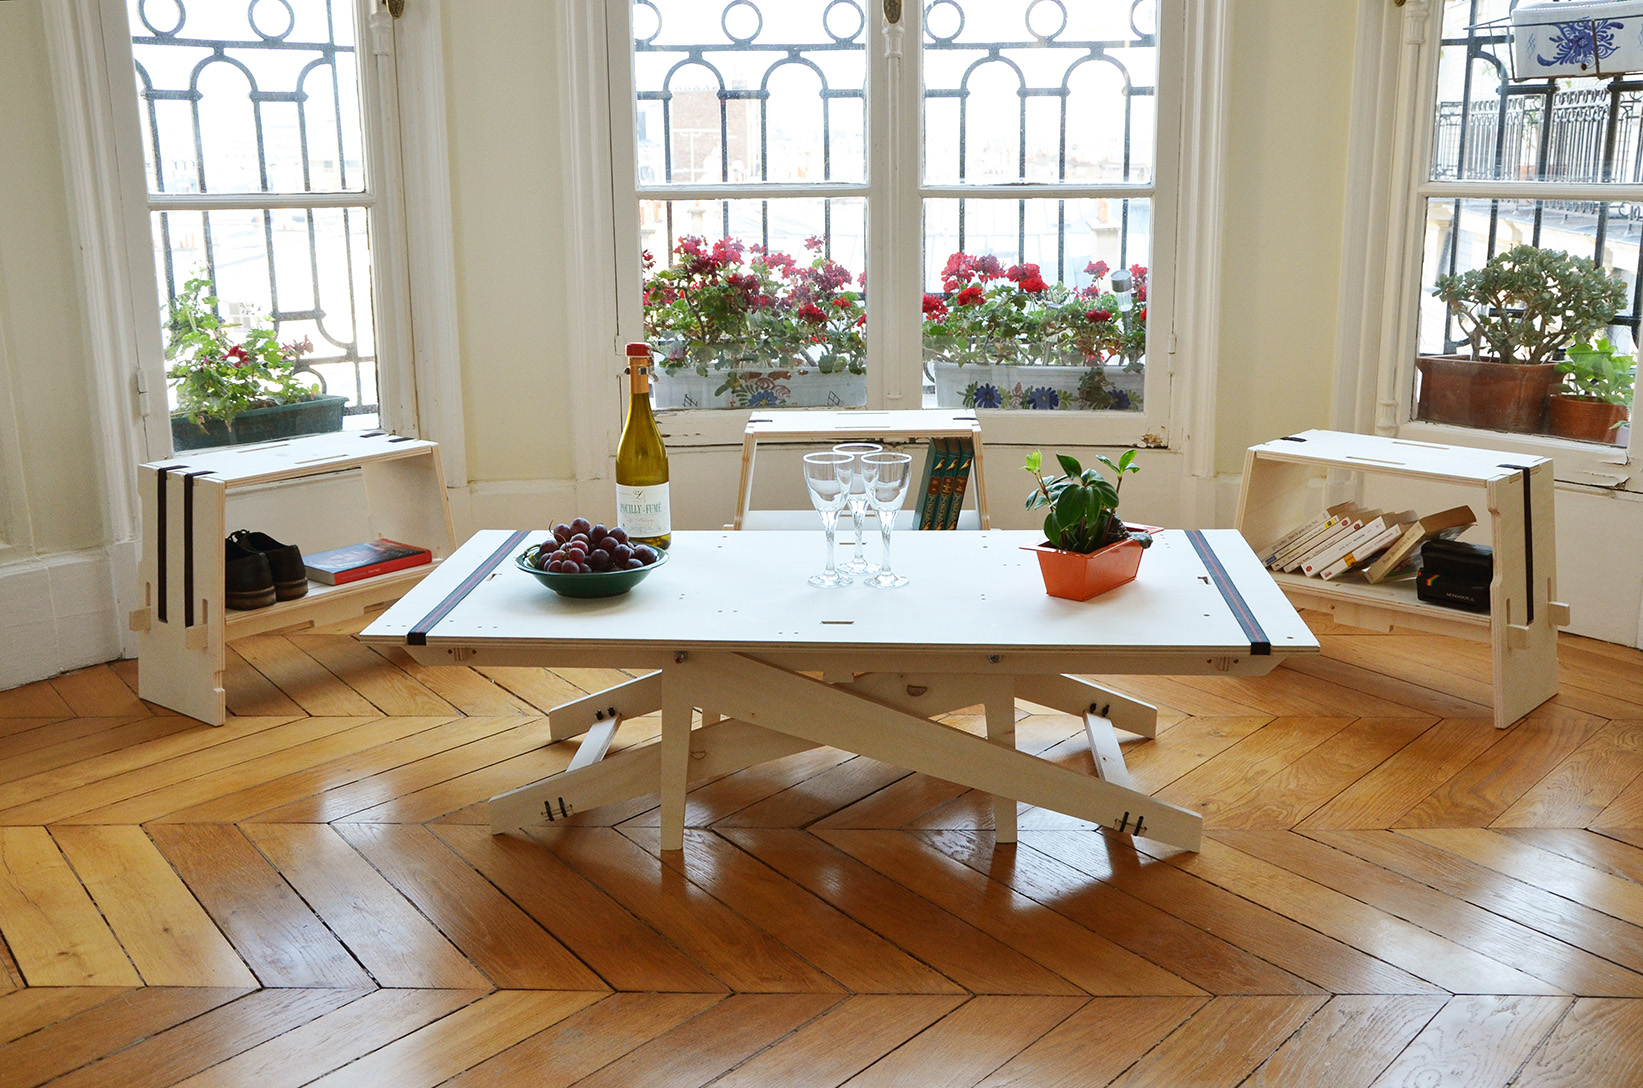 06-popup-moi-table-basse-assises-popup-moi